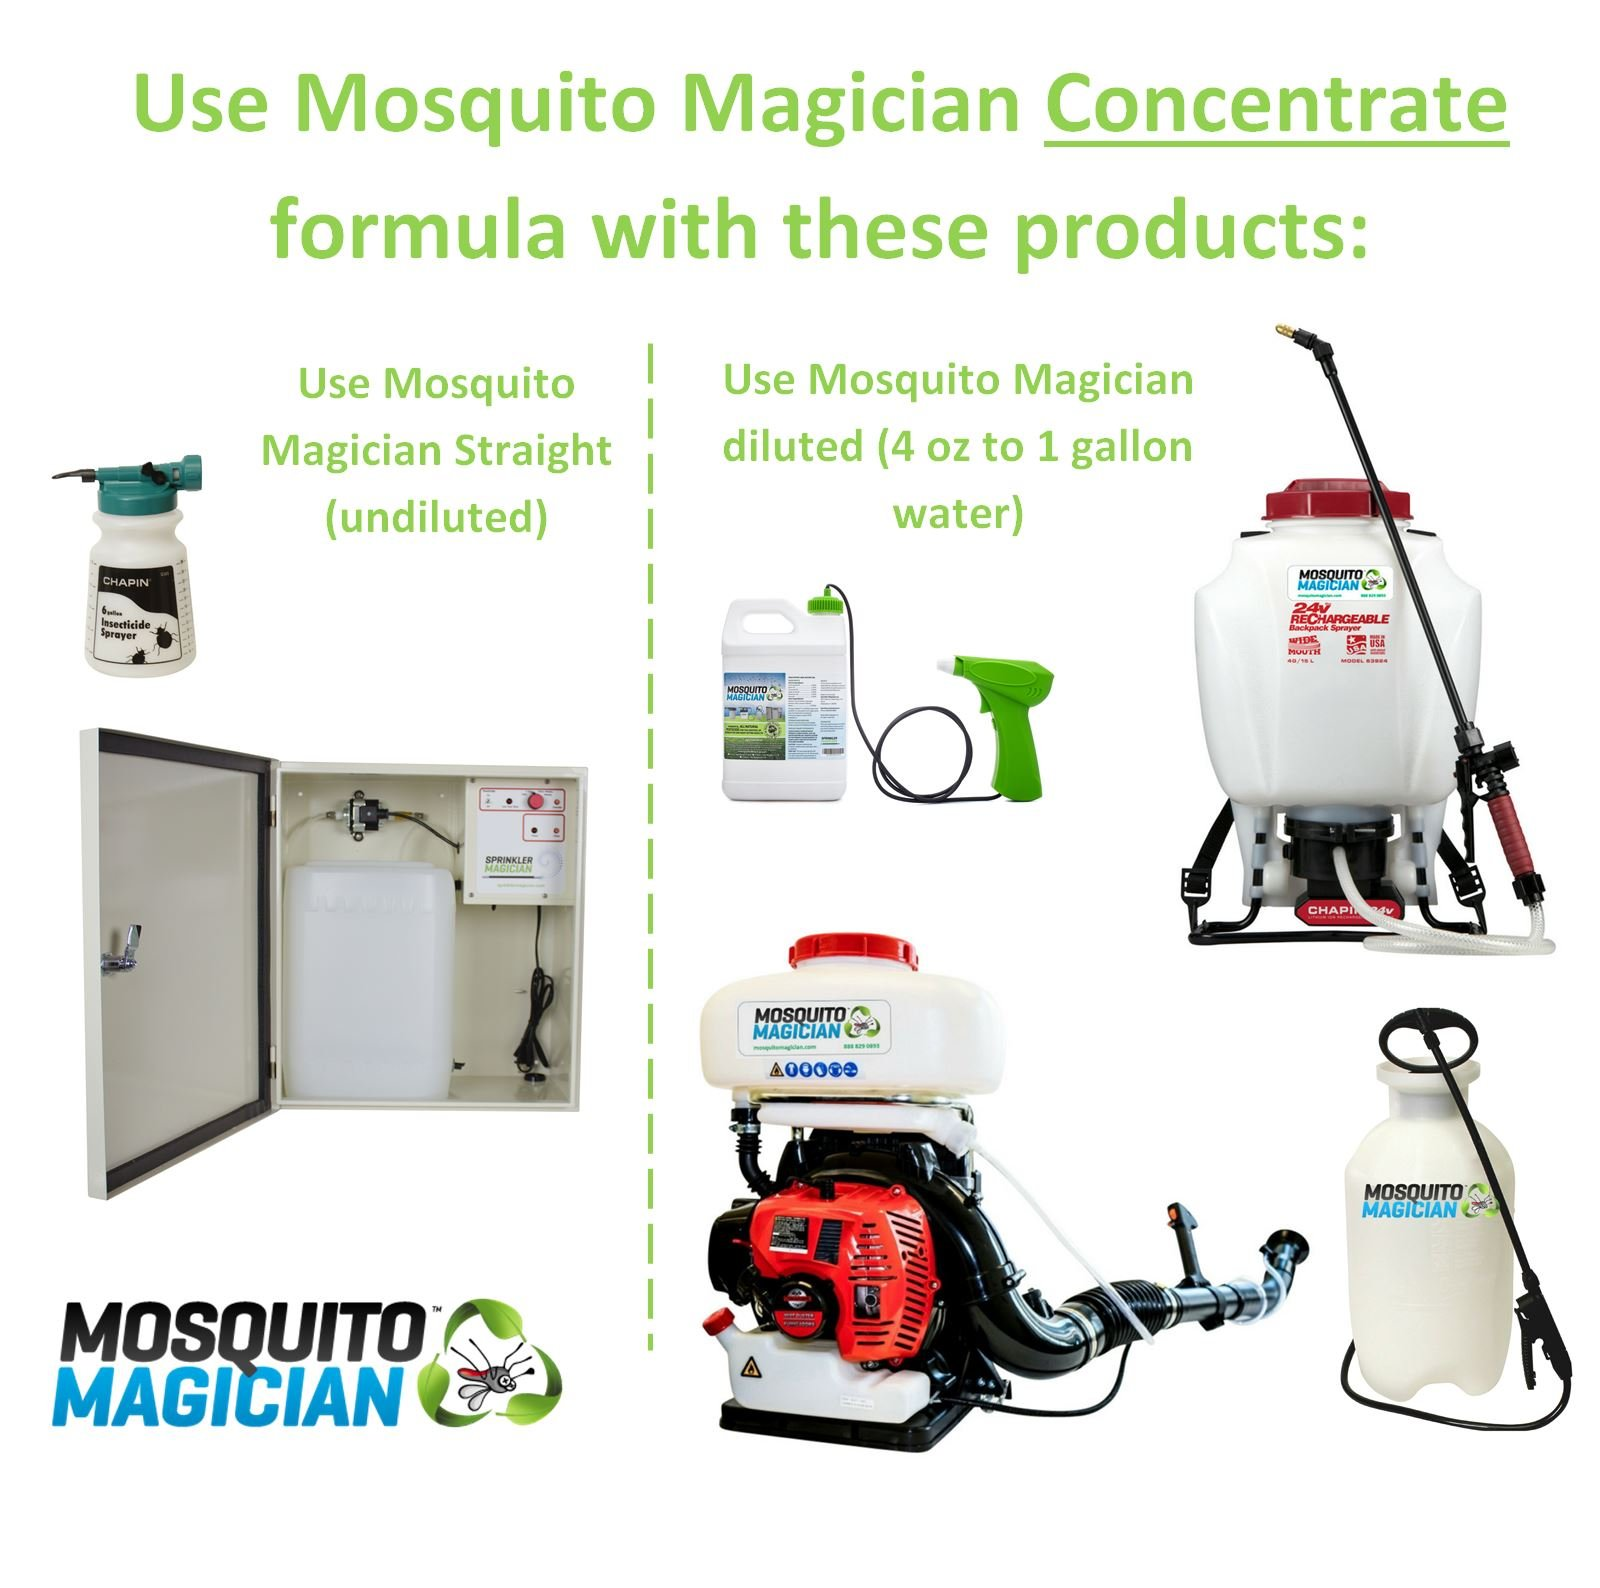 Mosquito Magician Pump Up Sprayer with 1 Gallon Natural Mosquito Killer & Repellent Concentrate by Mosquito Magician (Image #9)